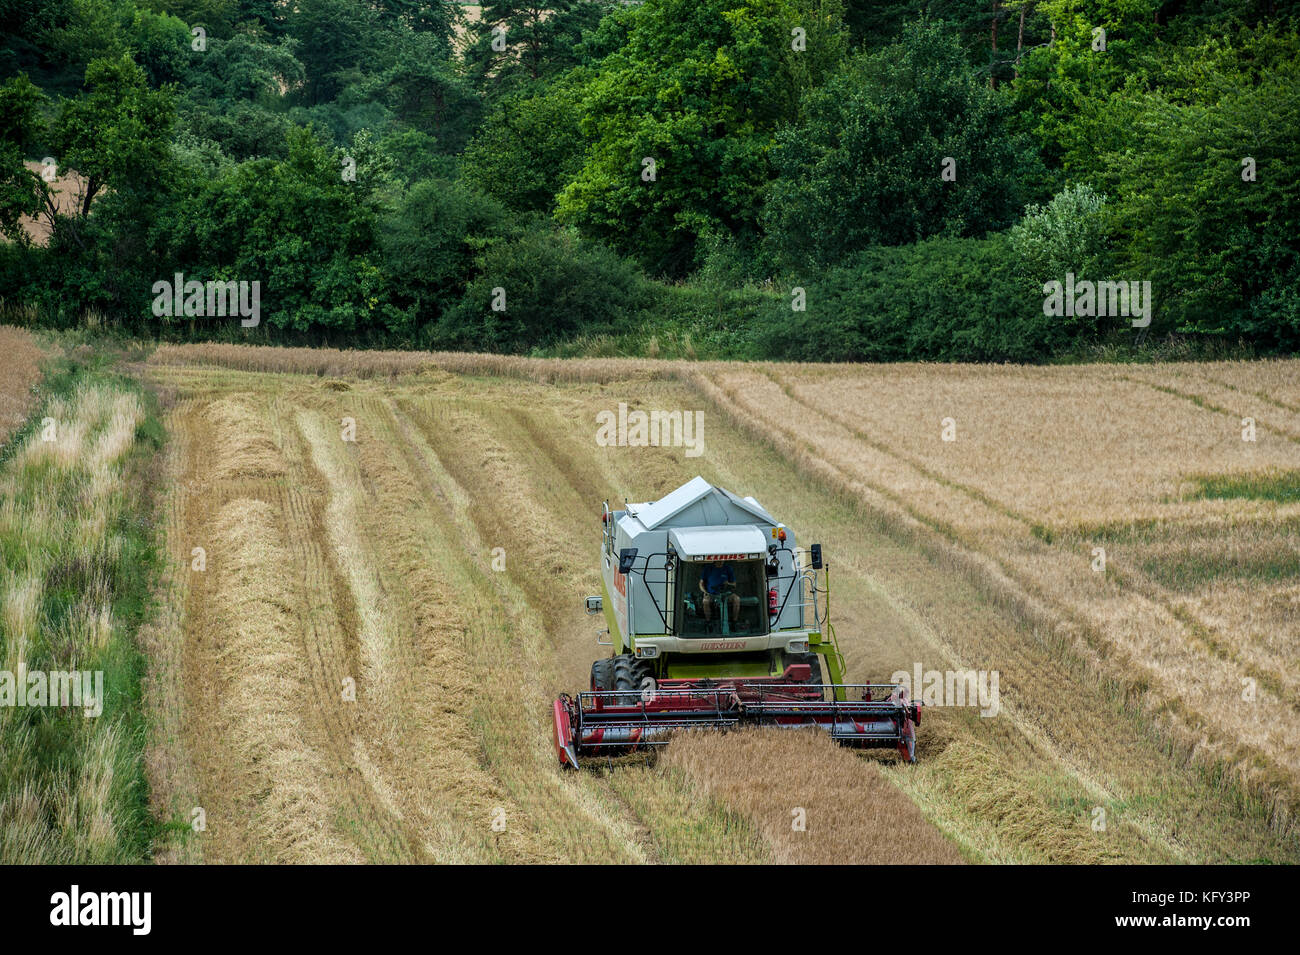 GERMANY, BAVARIA,. A combine harvester working on a small field near Obereisbach in the Rhoen Mountains - Stock Image